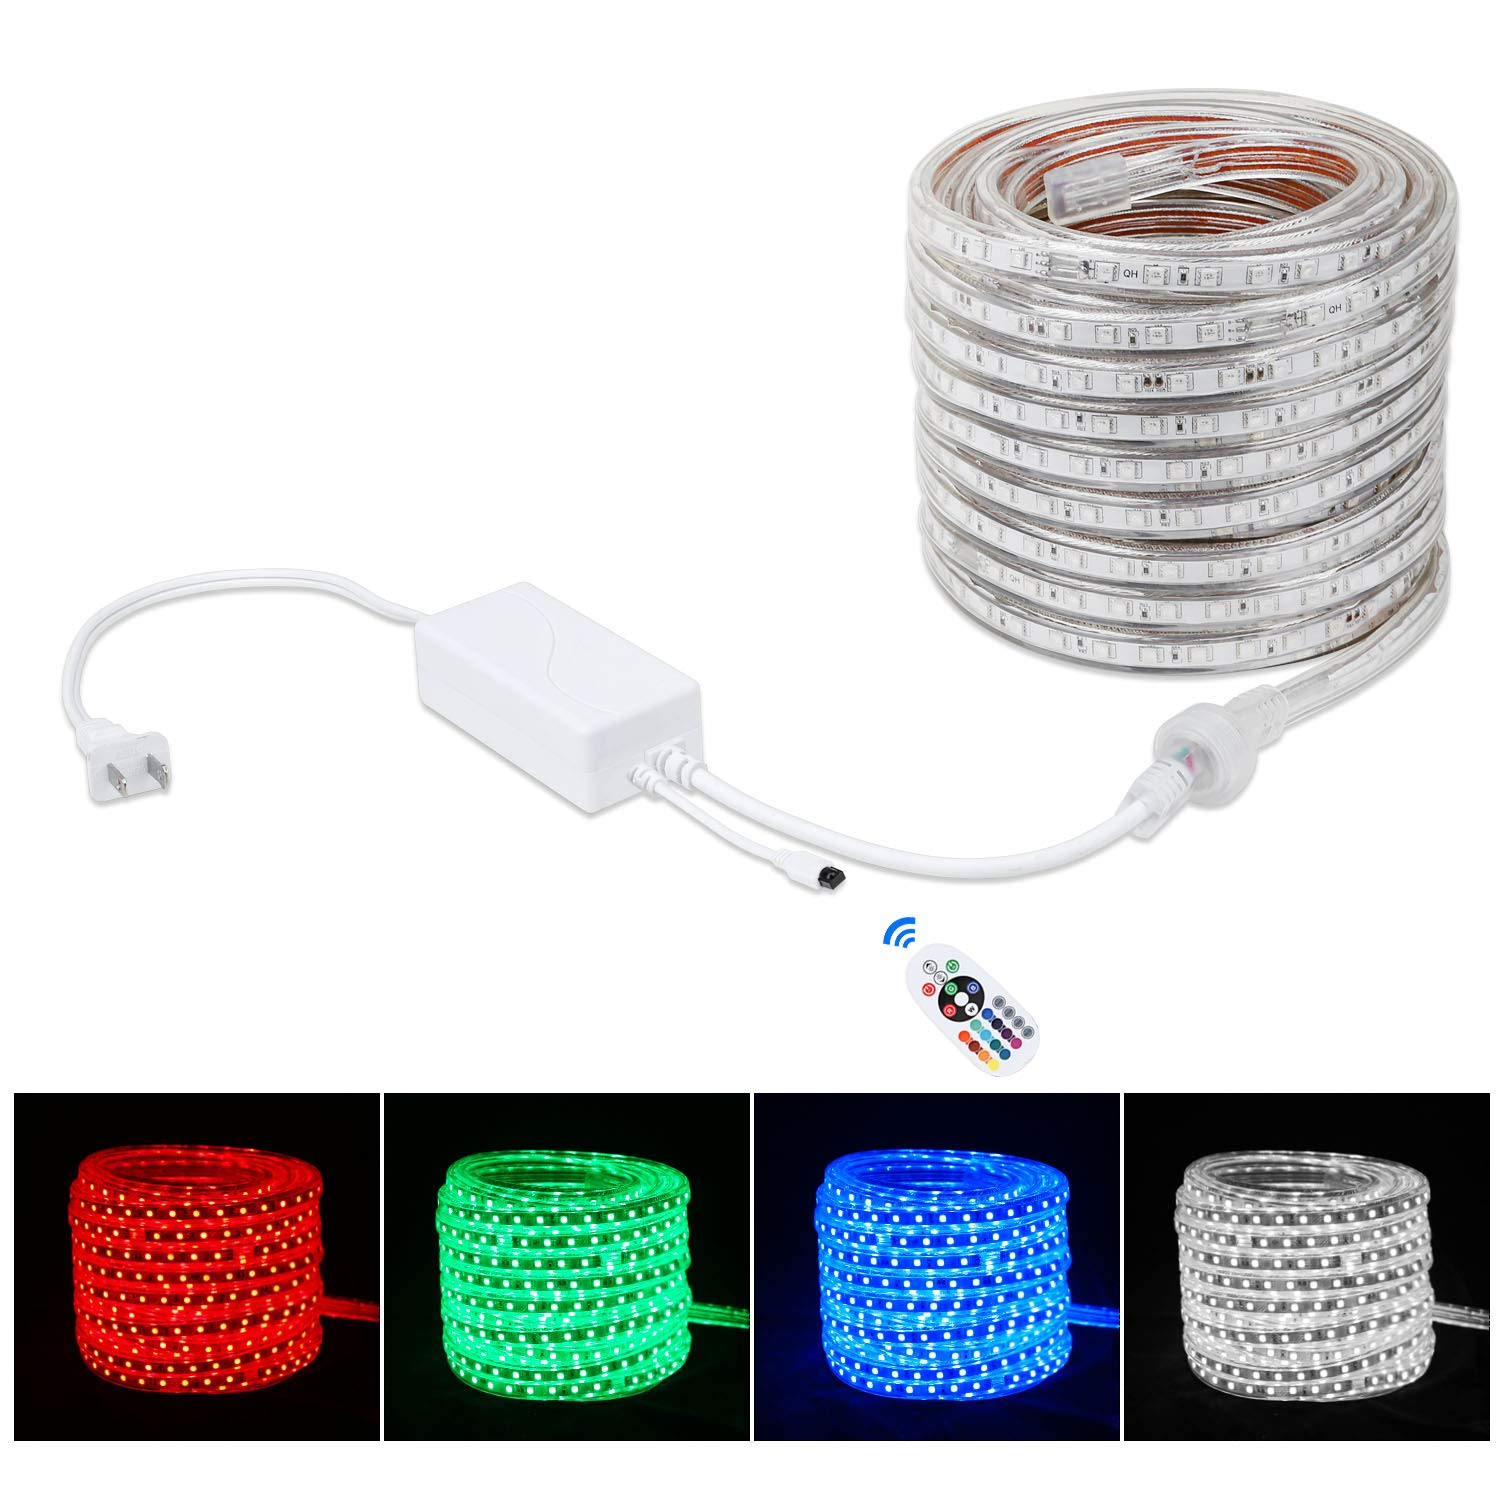 Brillihood Flexible LED RGB Rope Light Strip, Multi Color Changing SMD 5050 LEDs, 110-120V AC, Dimmable, Waterproof, Indoor/Outdoor Rope Lighting + Remote Controller - (10m/32.8ft)